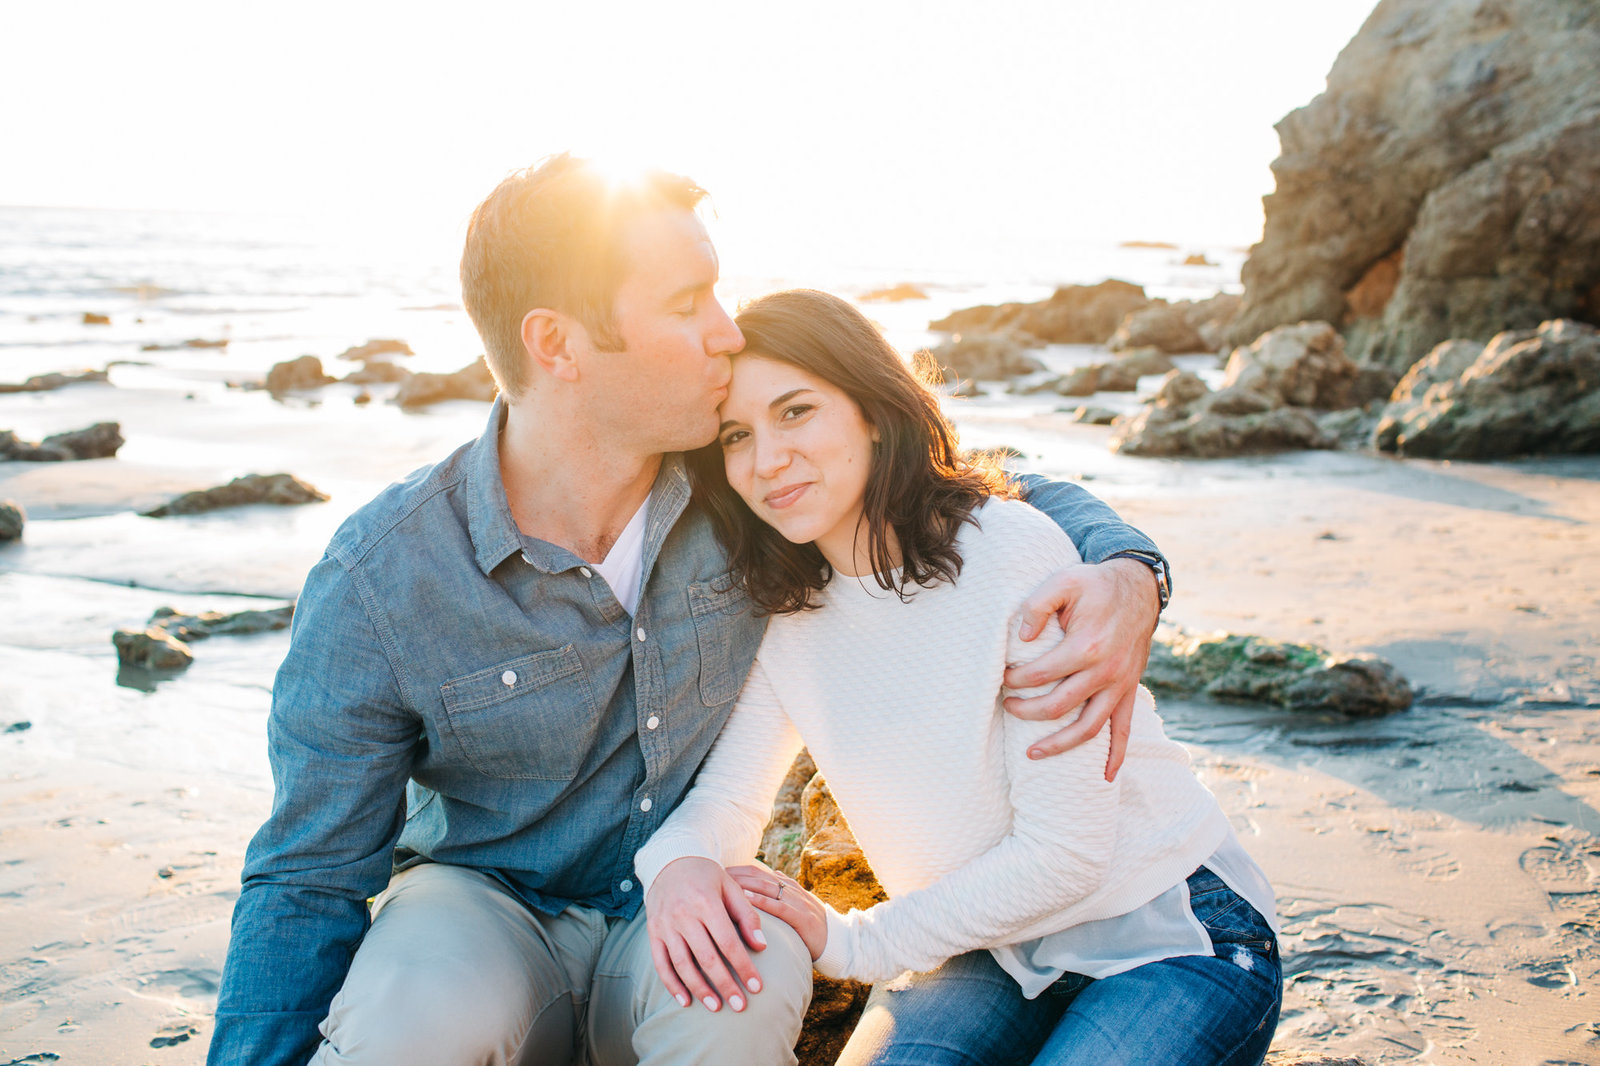 Malibu_Engagement_Session_Lily_Ro_Photography-9315